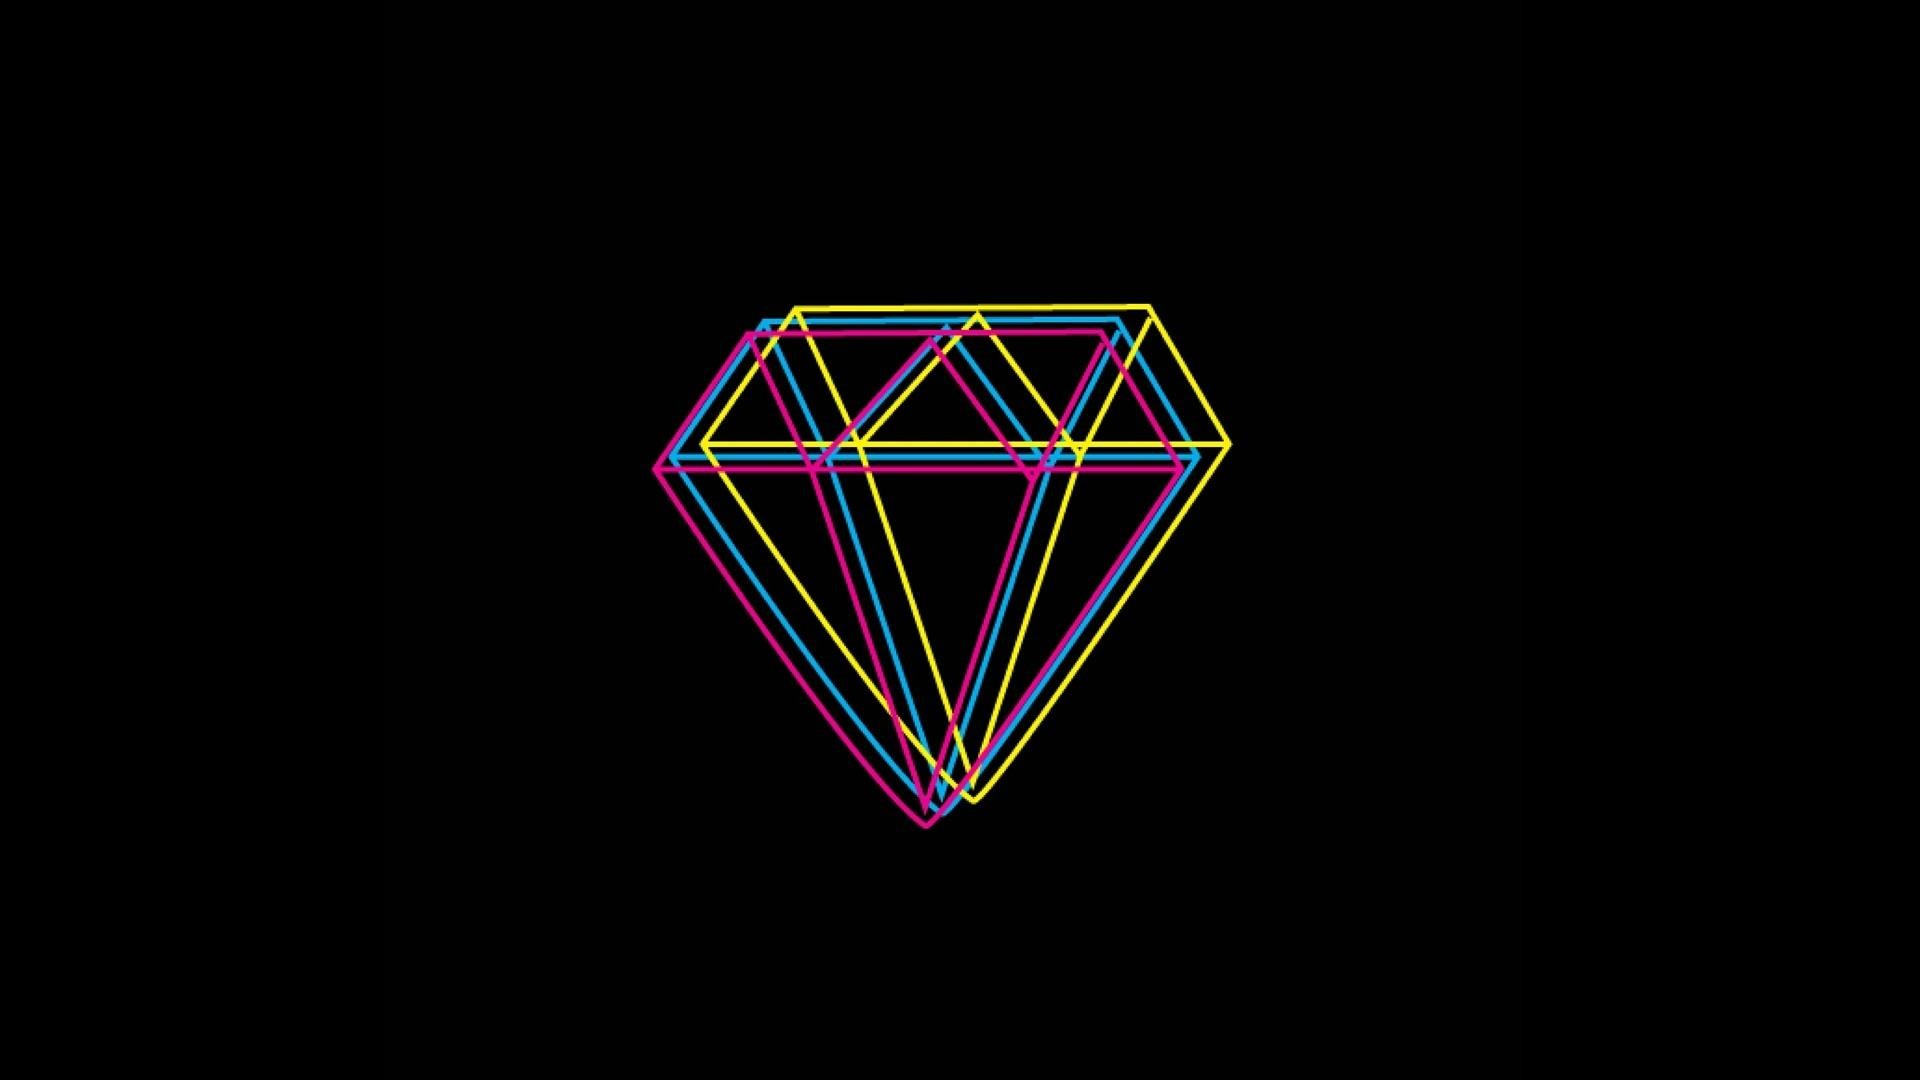 Res: 1920x1080, Neon Diamond Wallpaper   Wallpaper Studio 10   Tens of thousands HD and  UltraHD wallpapers for Android, Windows and Xbox